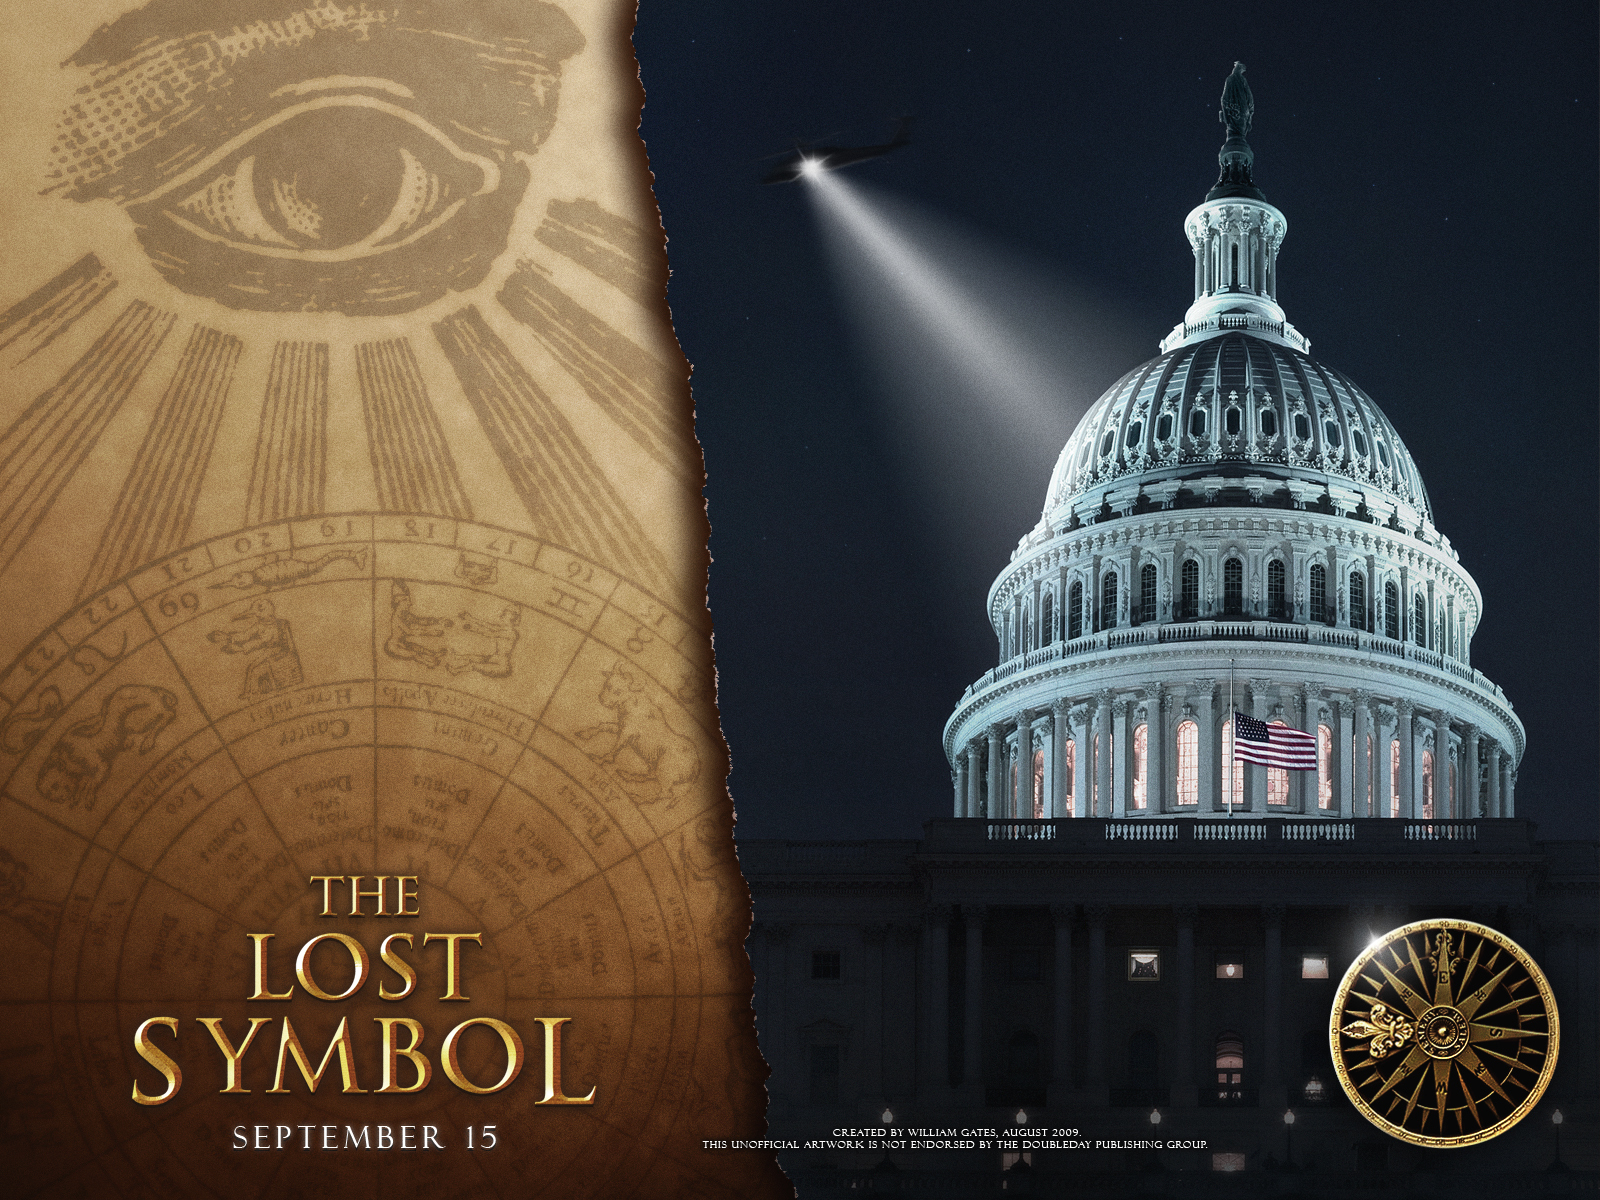 The Lost Symbol Gallery Meaning Of This Symbol